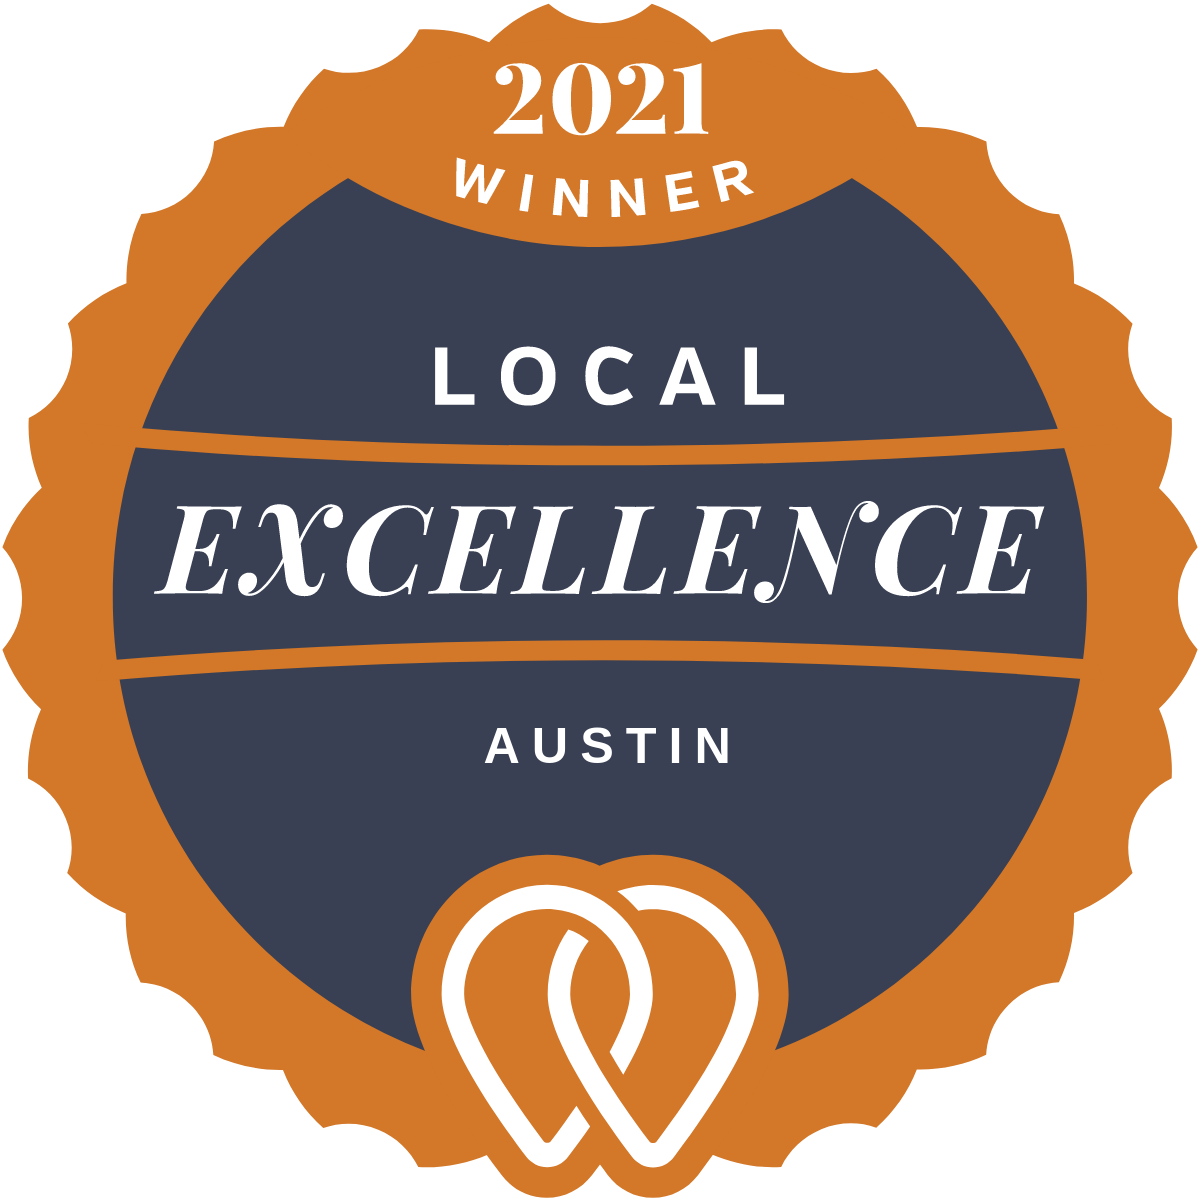 2021 Local Excellence Winner in Austin, TX